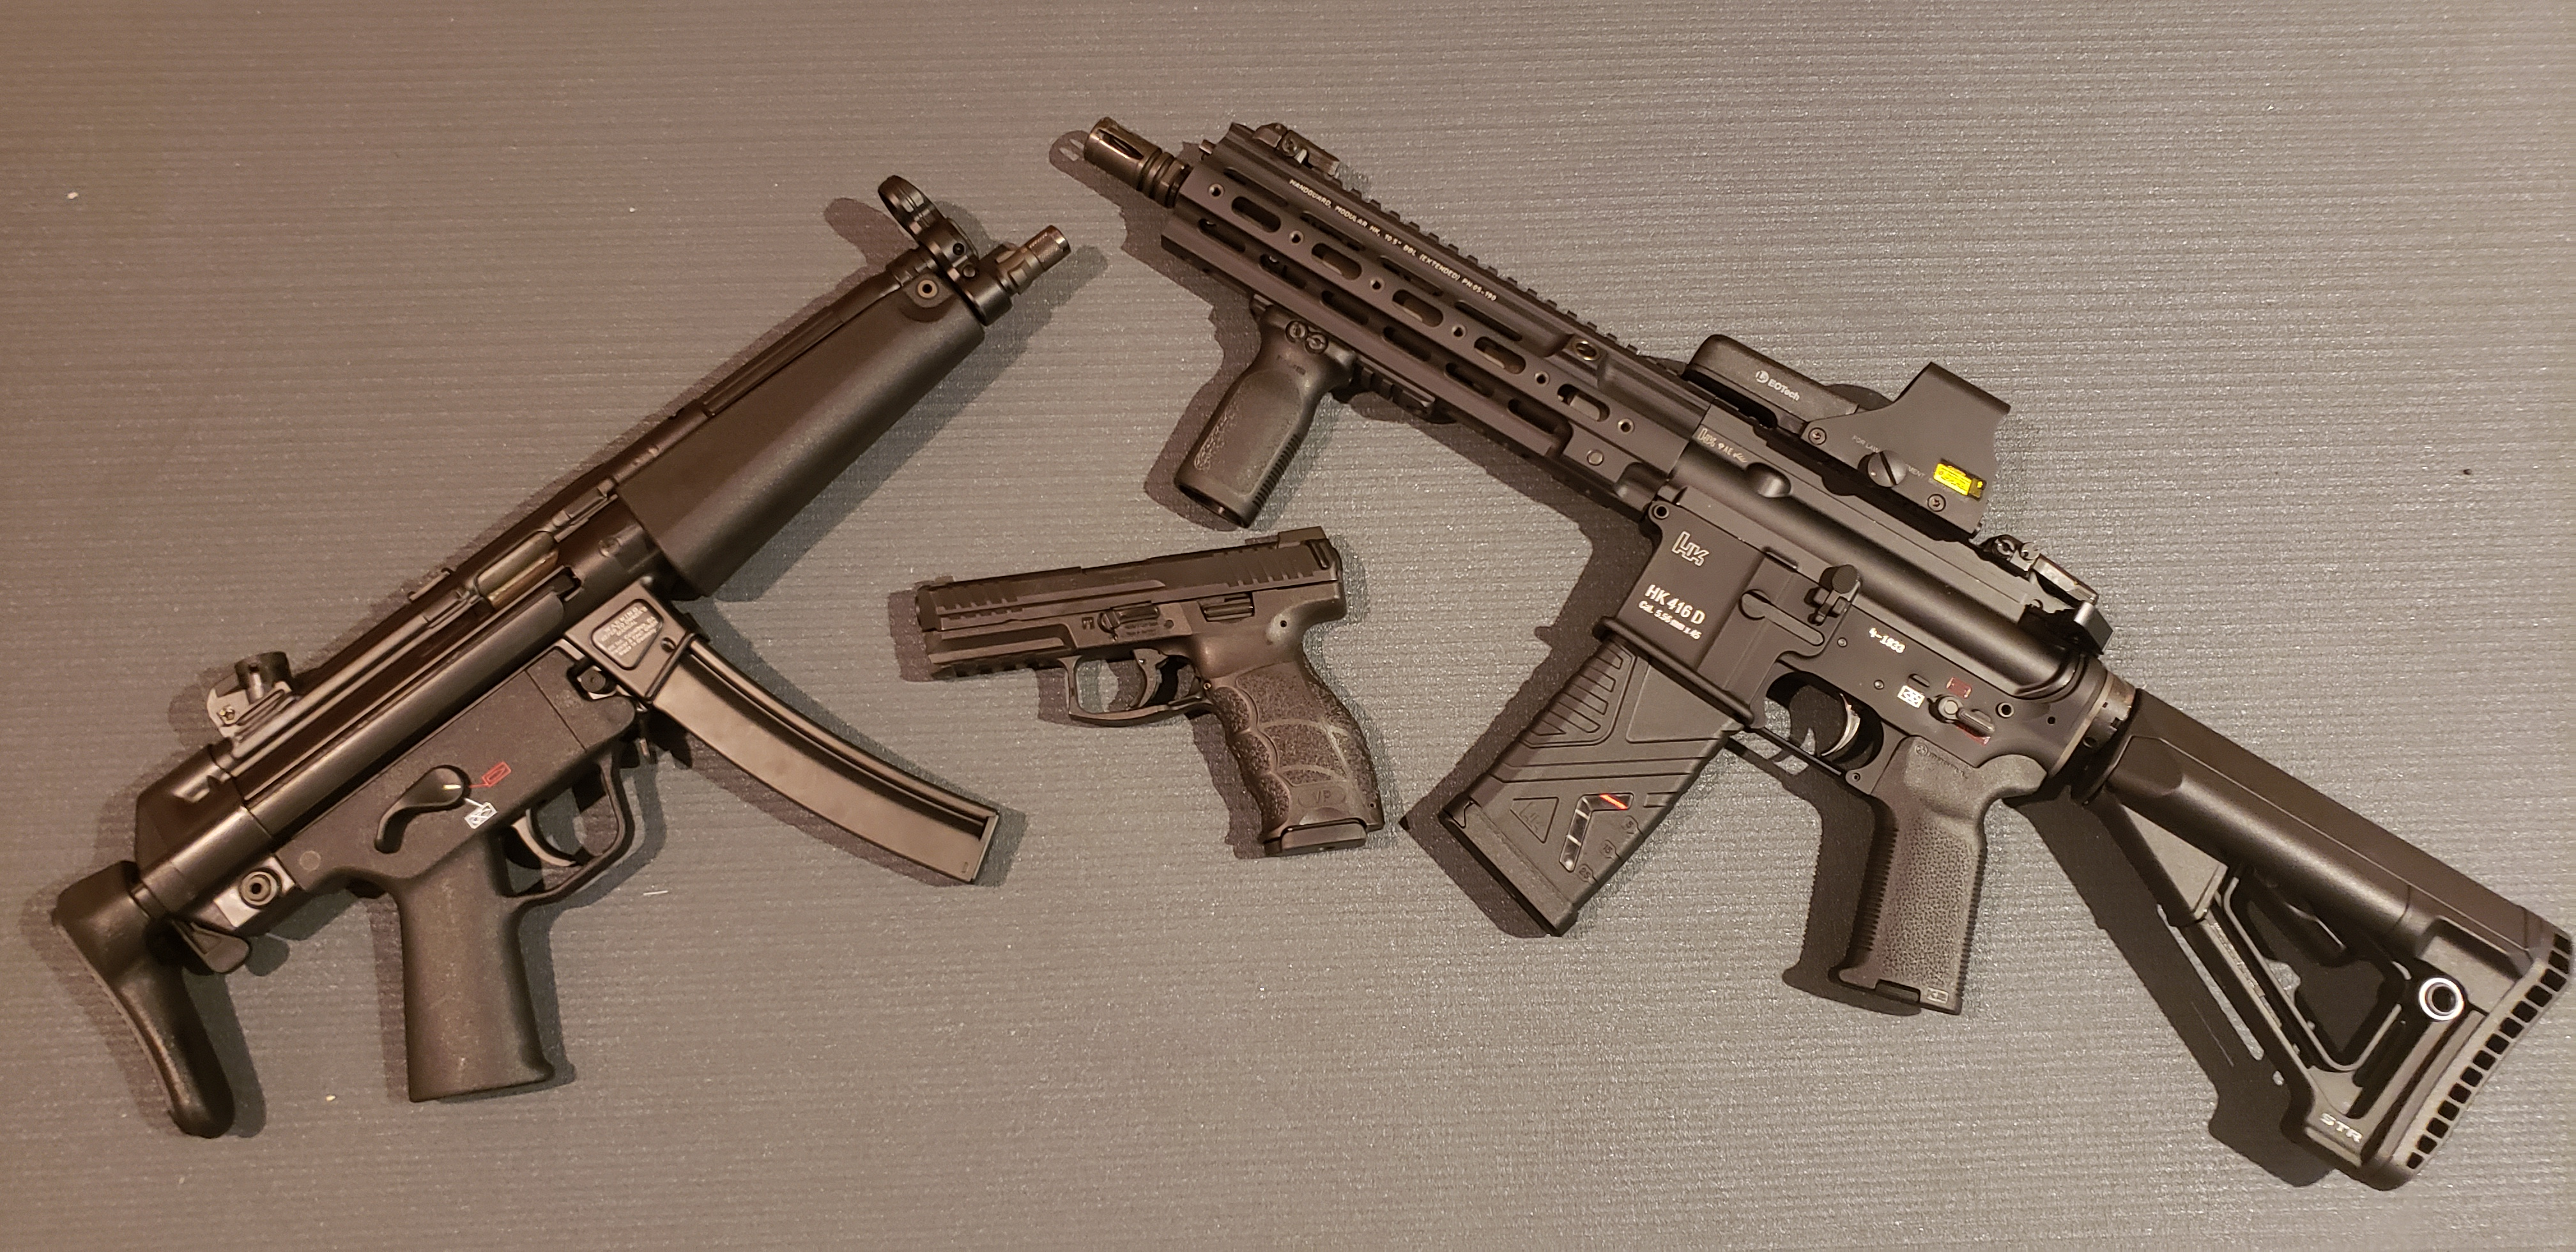 The Start Of My HK Collection-bjdo32q.jpg